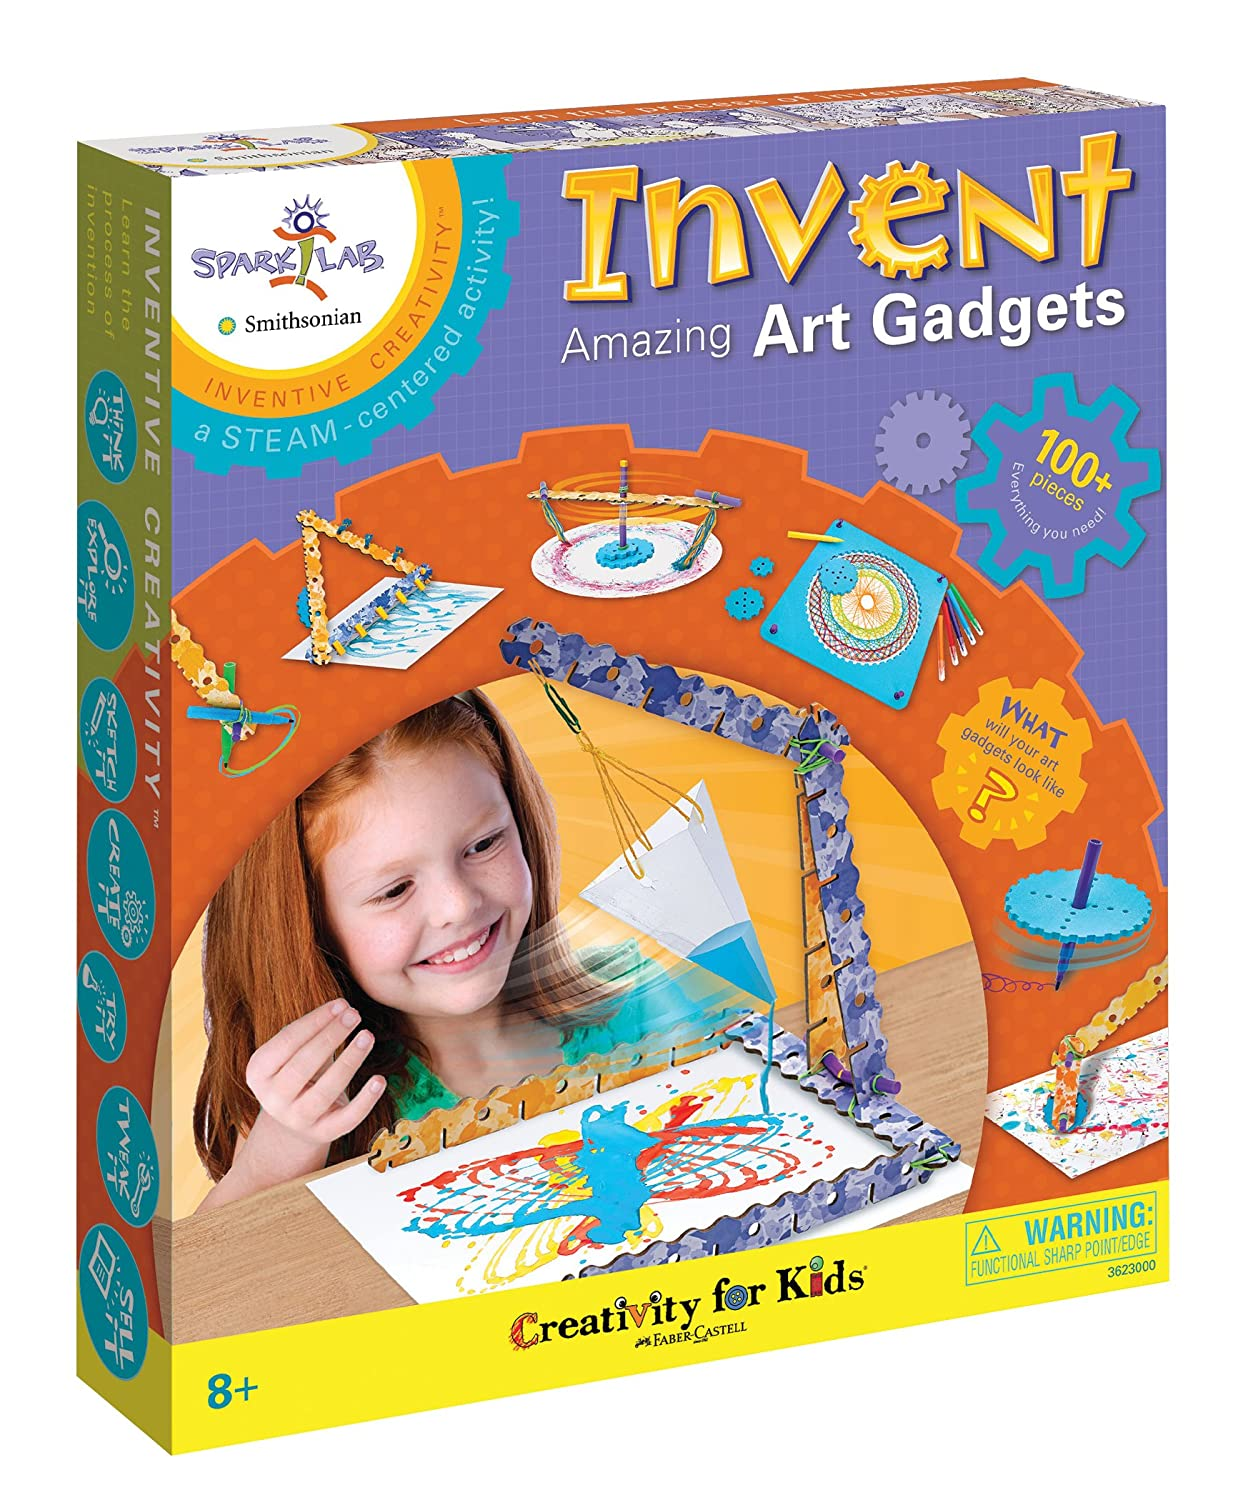 Creativity for Kids Spark Lab Smithsonian Invent Amazing Art Gadgets Kit